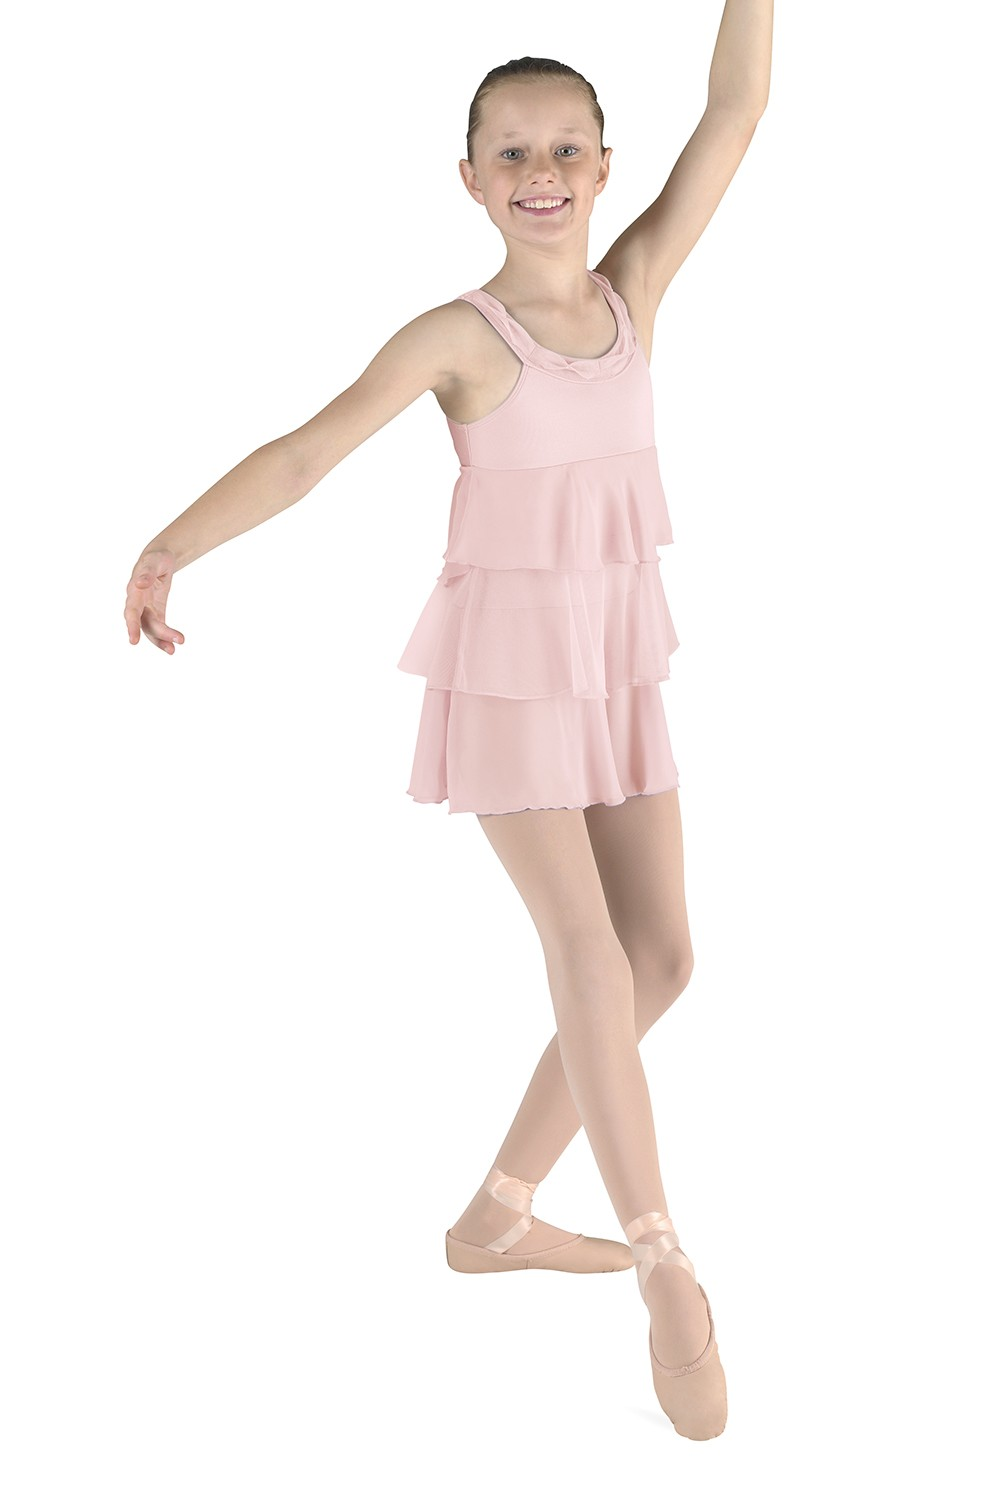 Body De Alças Grossas Com Saia Children's Dance Leotards